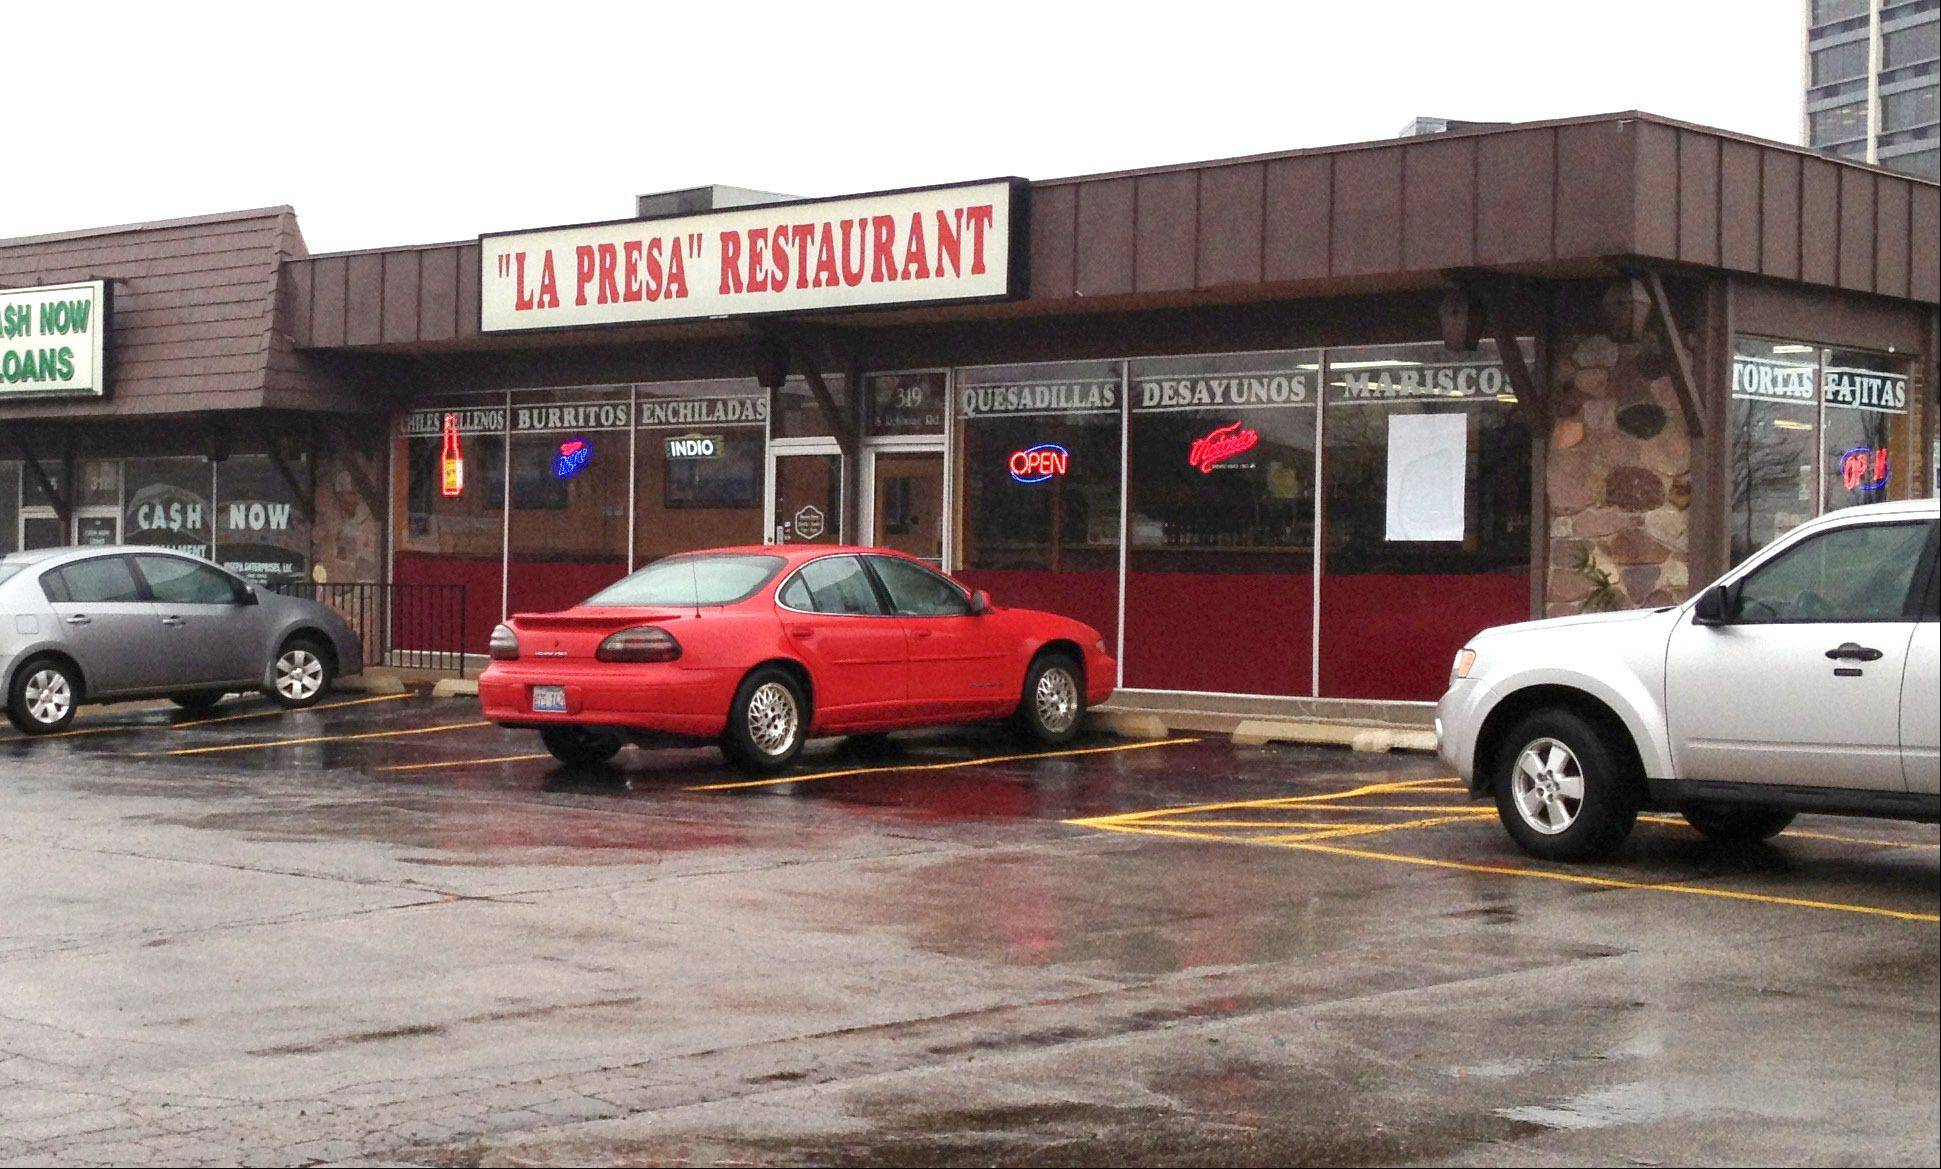 La Presa, 319 S. Rohlwing, faces a two-week suspension of its business license because of a drug sale on the premises, but appears to have avoided a complete revocation of its license.